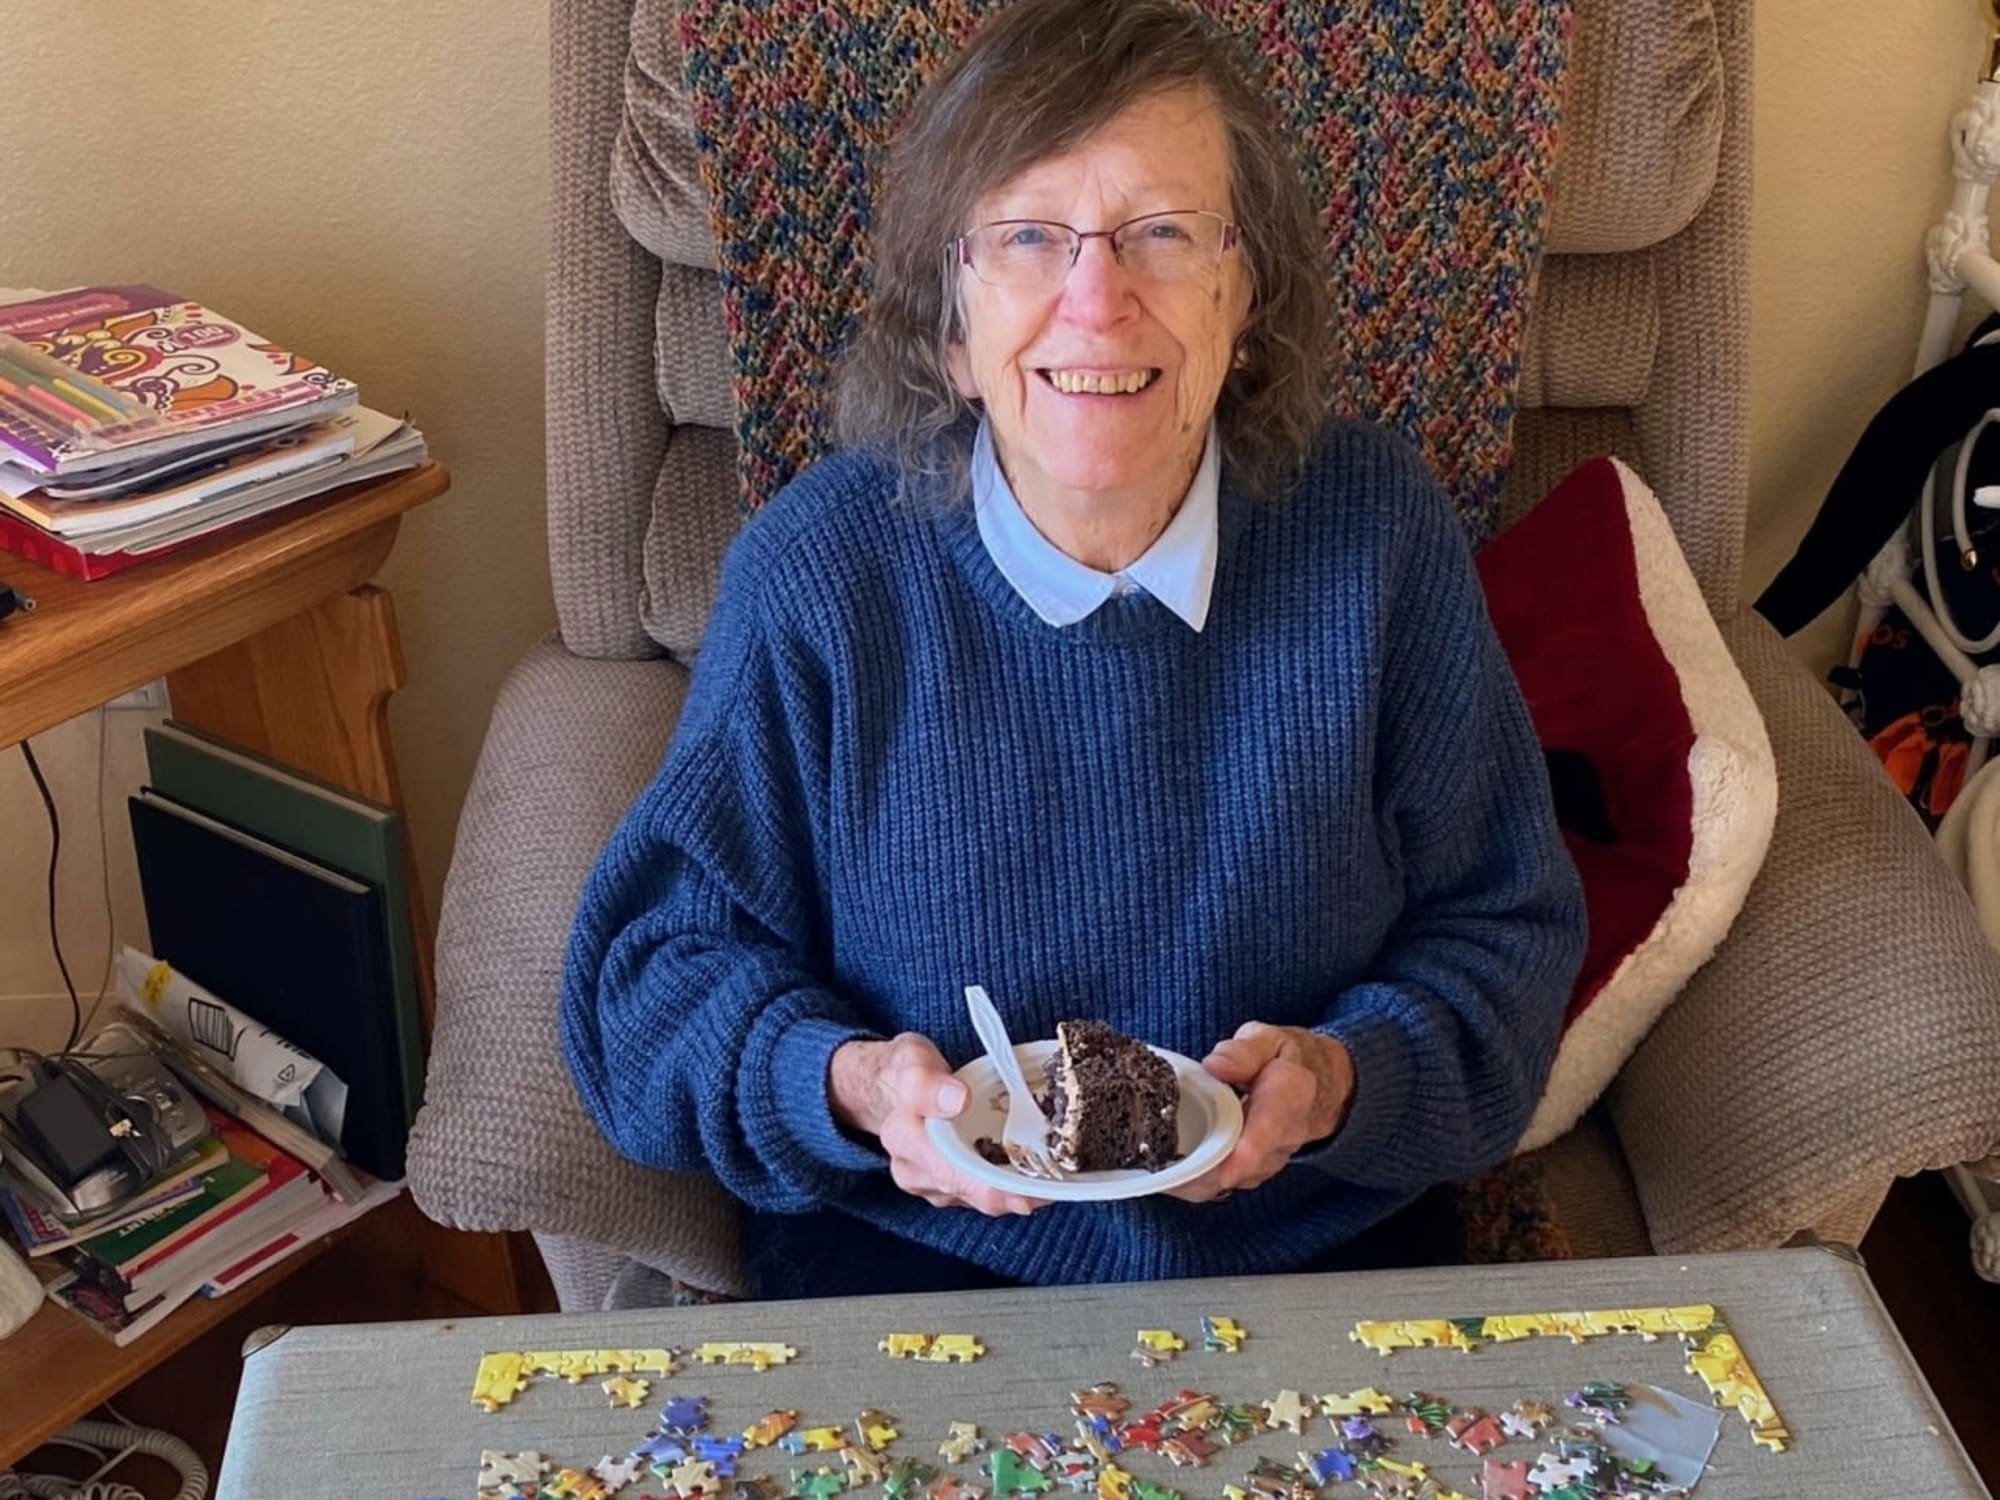 Doing a large jigsaw puzzle at Seven Lakes Memory Care in Loveland, Colorado